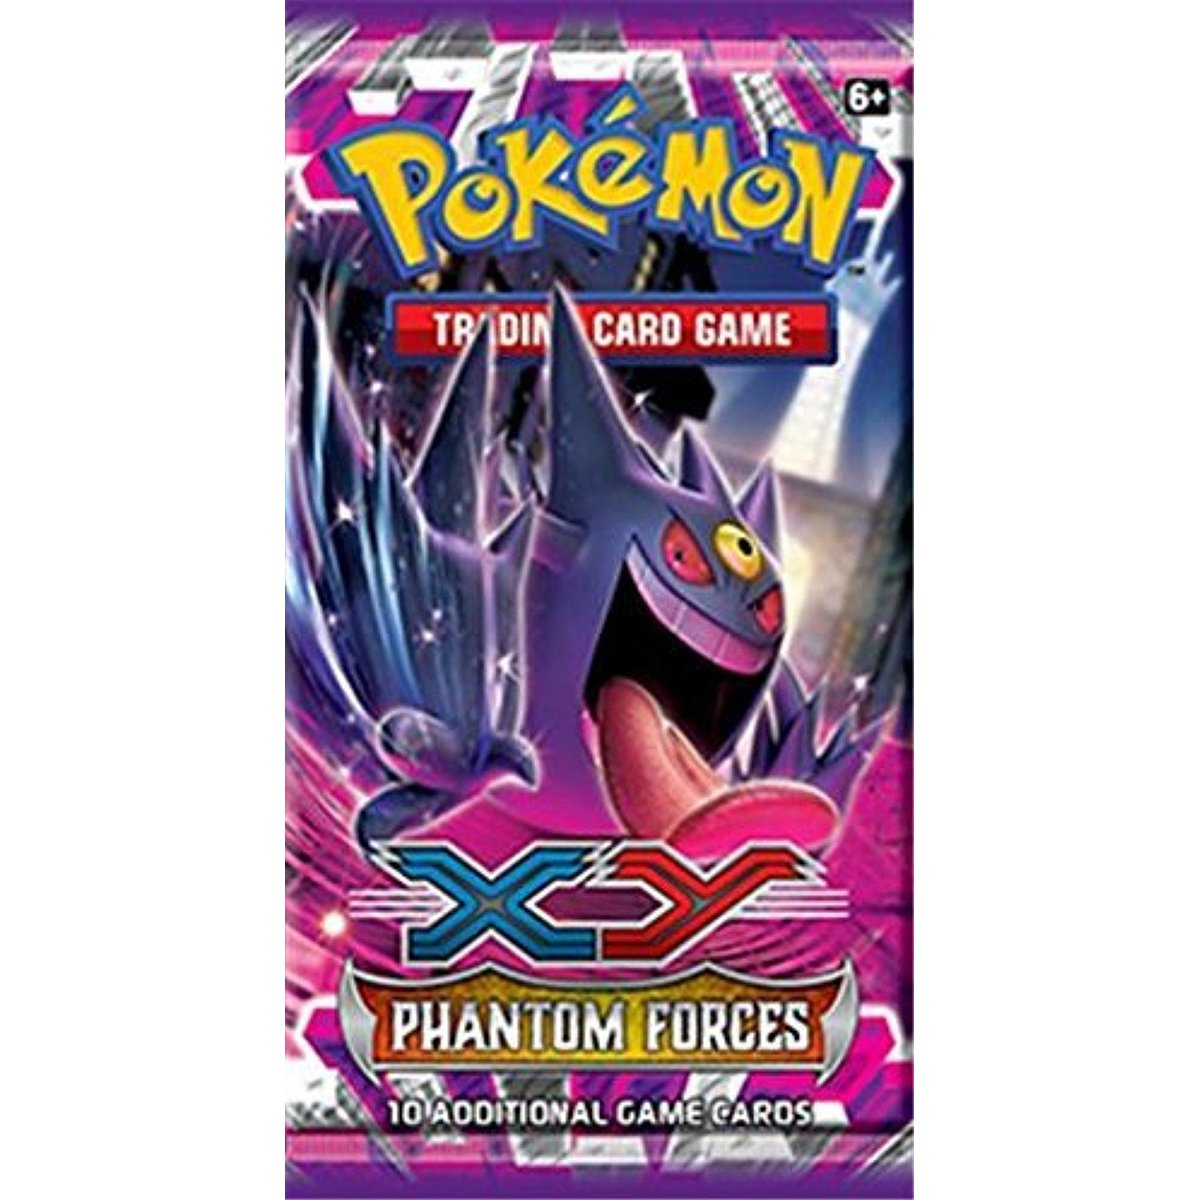 Phantom Forces DIGITAL Booster Pack (XY Series) Pokemon TCGO TCG Online READ DESCRIPTION!